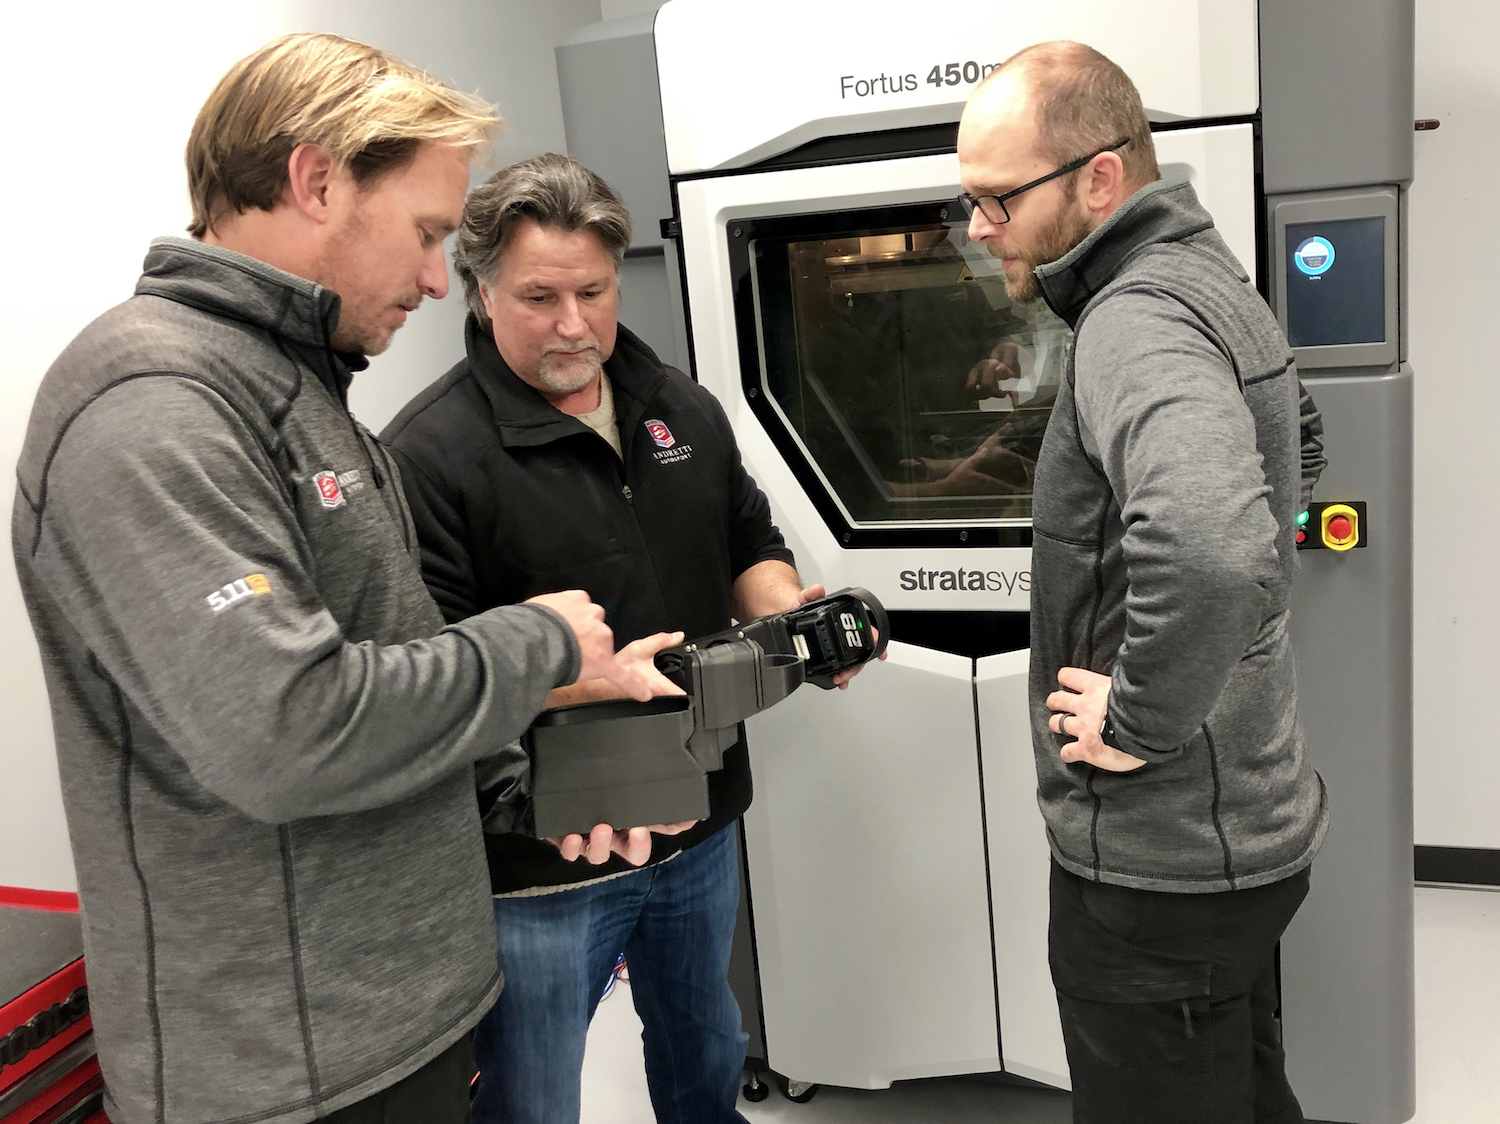 Michael Andretti (middle) with Eric Bretzman, Technical Director and Aaron Marney, Senior Development Engineer of Andretti Autosport. Image via Stratasys.